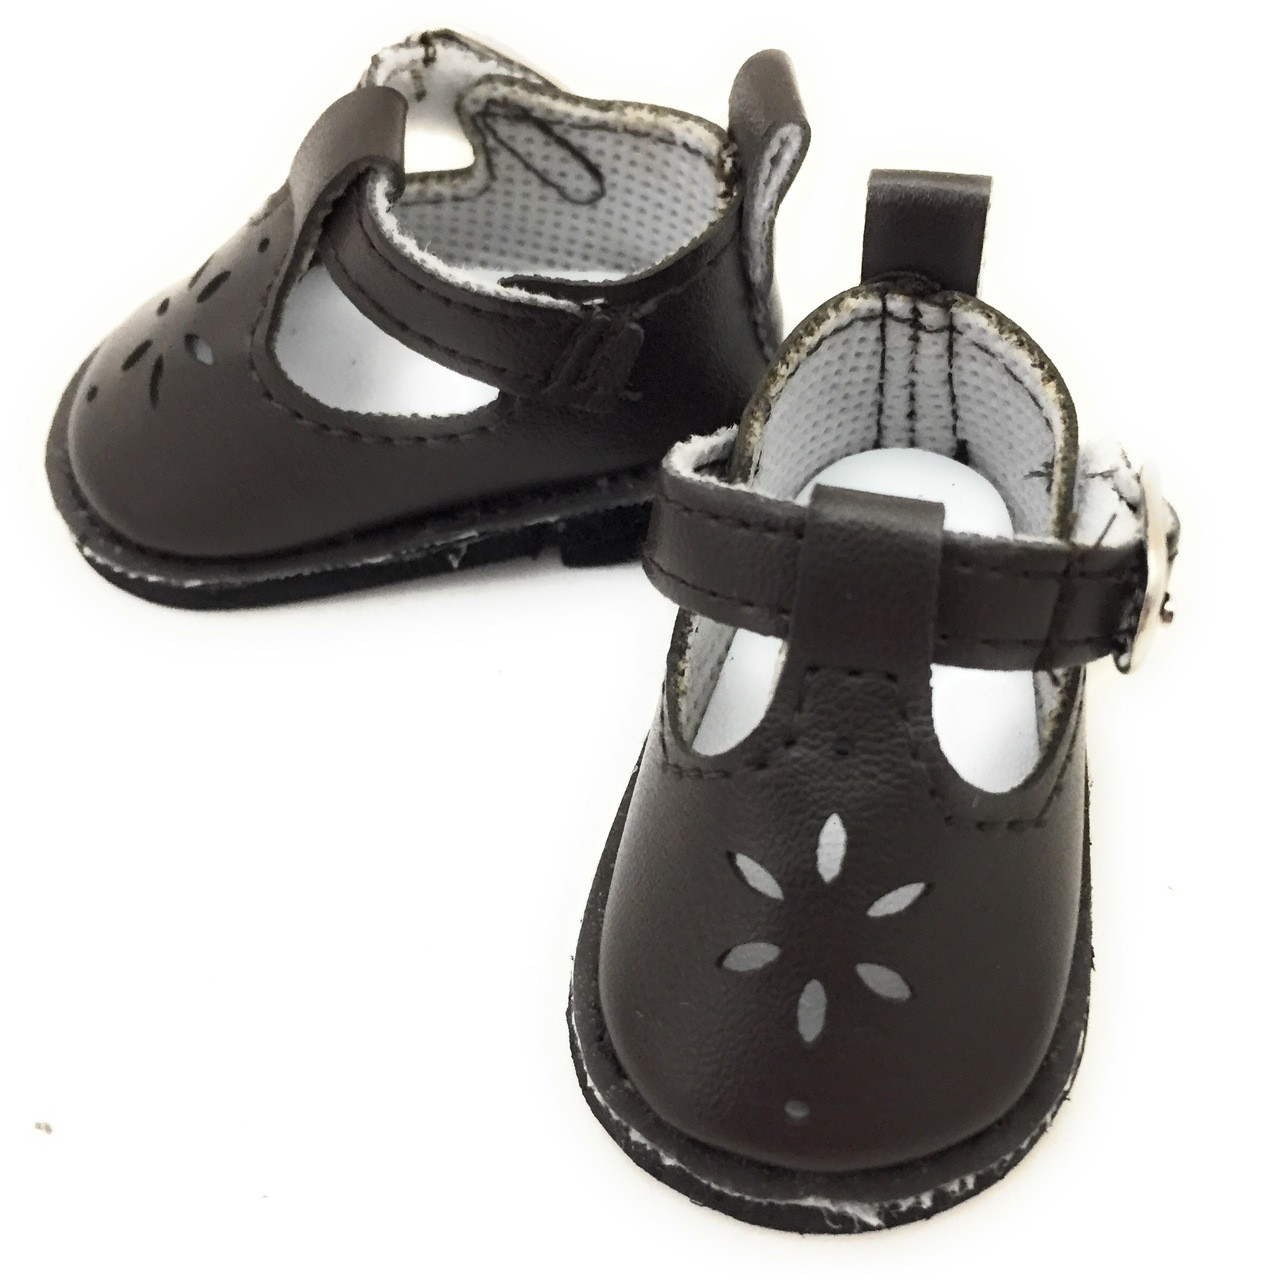 5e7c41842ff1b Mary Jane Shoes-Brown for Wellie Wishers Dolls